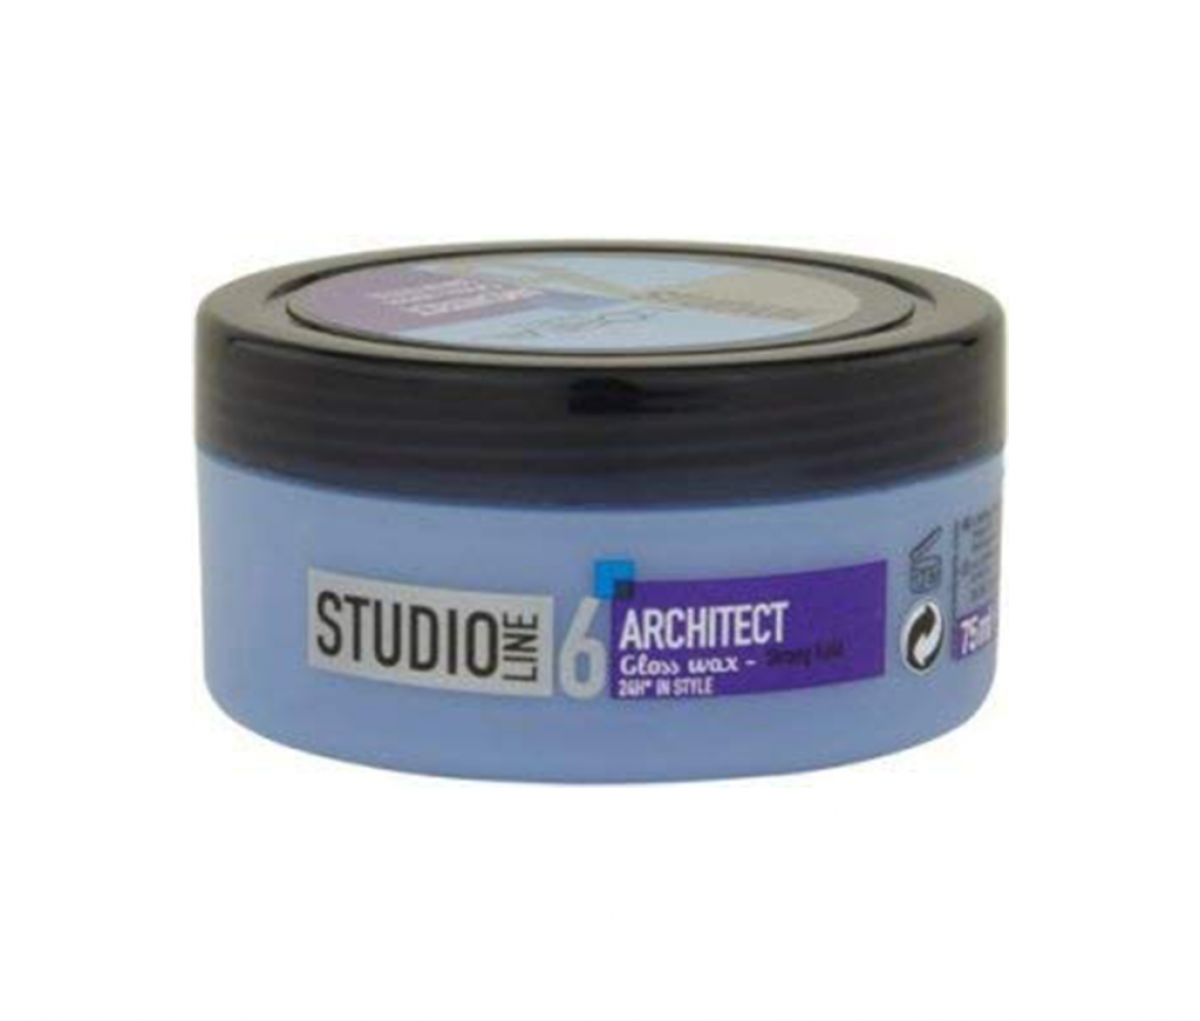 L'Oreal  NR 6 Architect Strong Wax